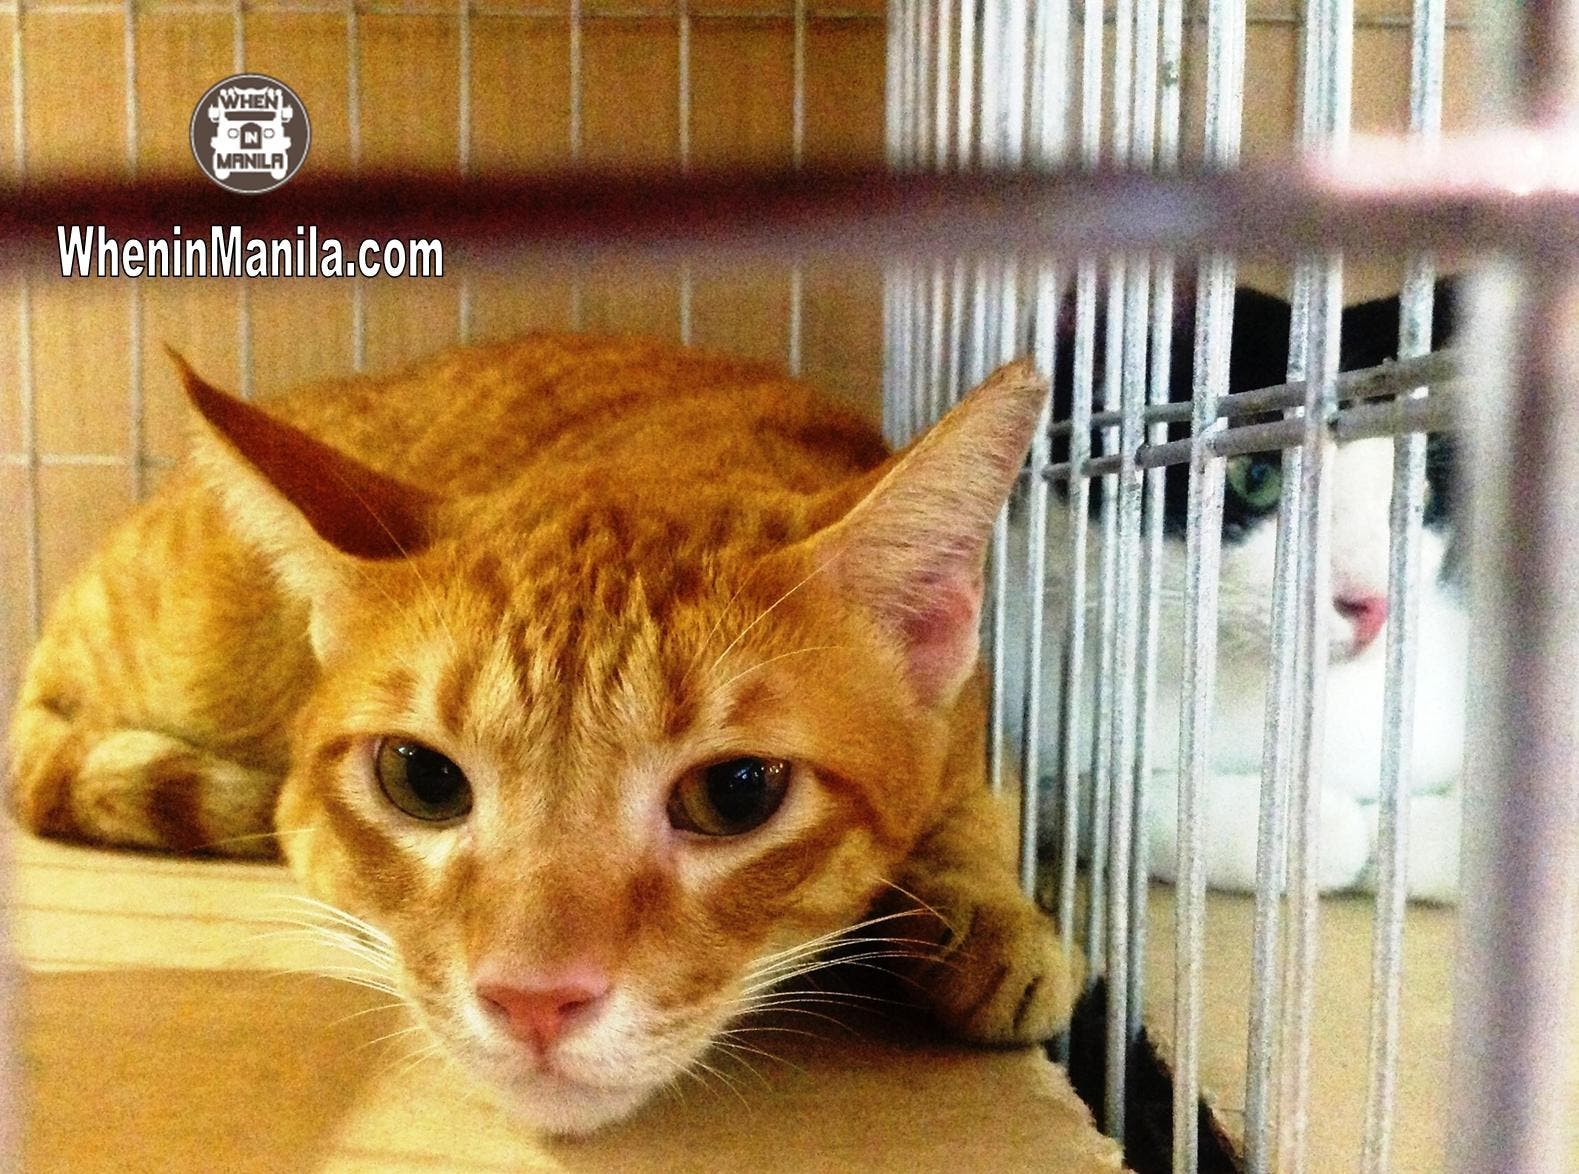 Animal Rescue and Welfare in the Philippines - Charlie - Rescued Cat for Adoption